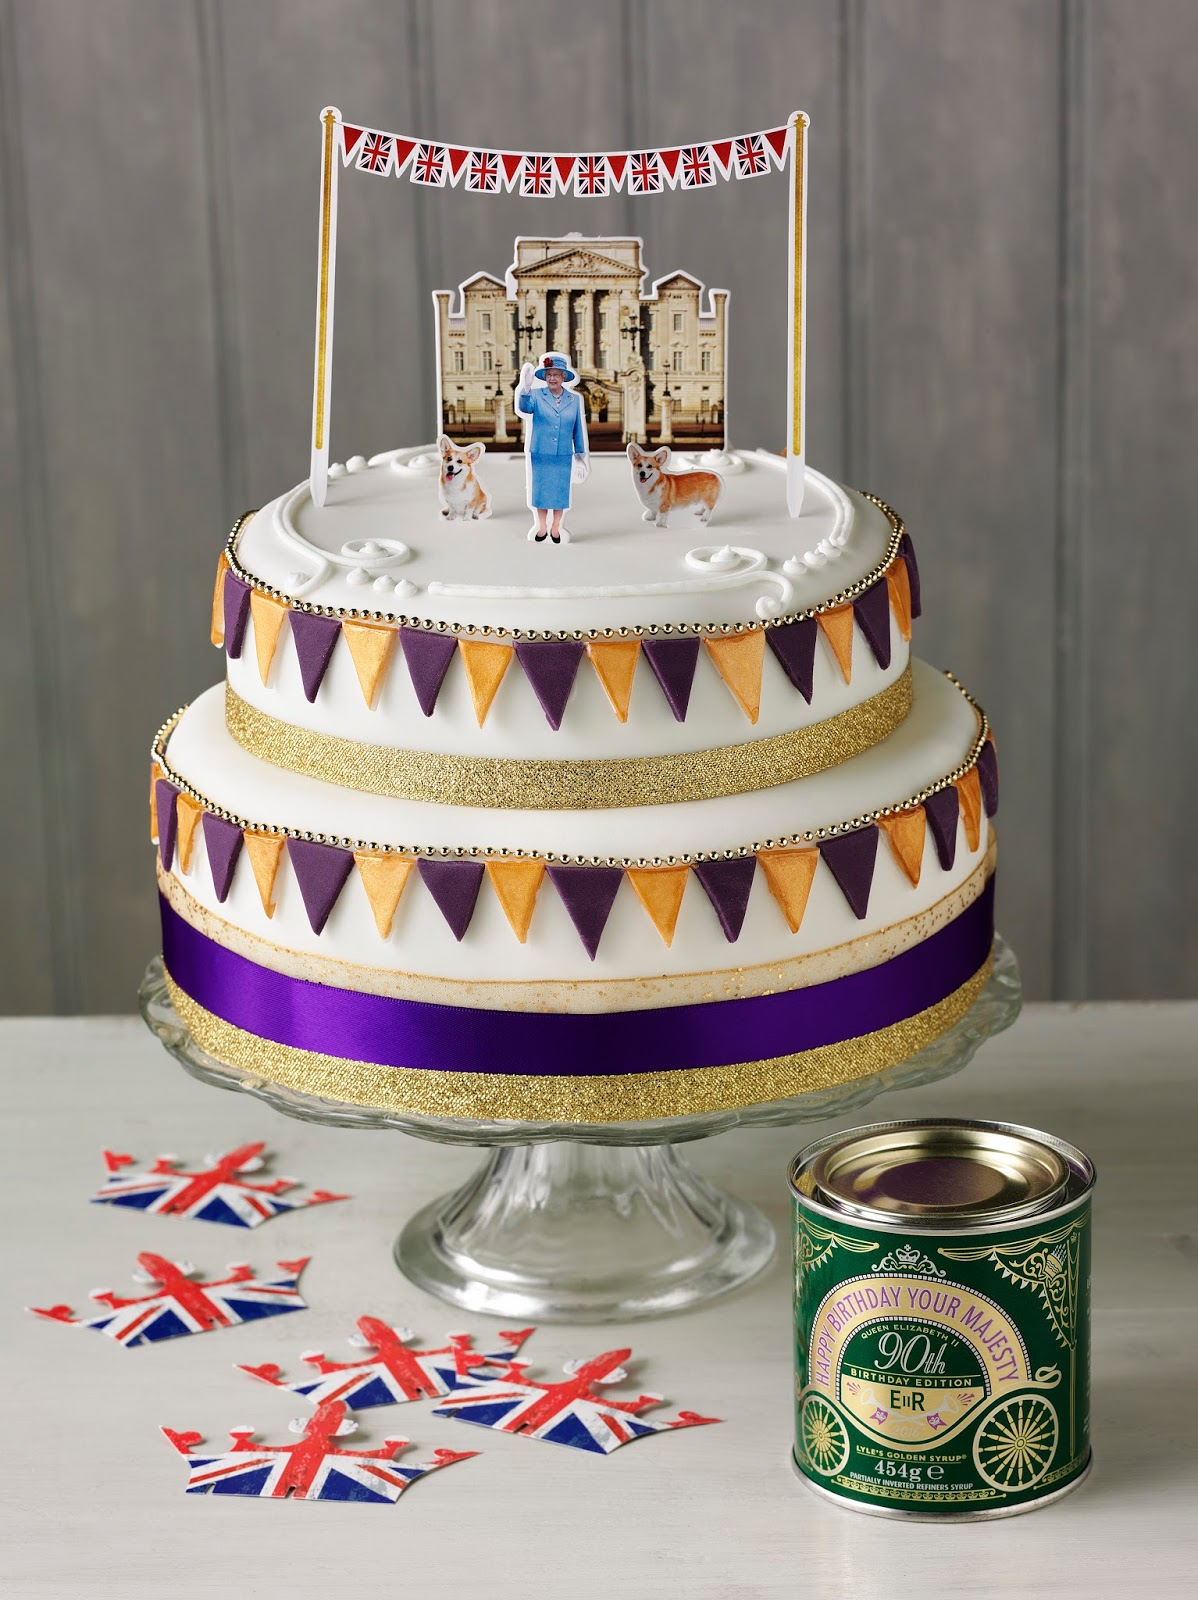 Her Majesty's Birthday Cake Fit For A Queen